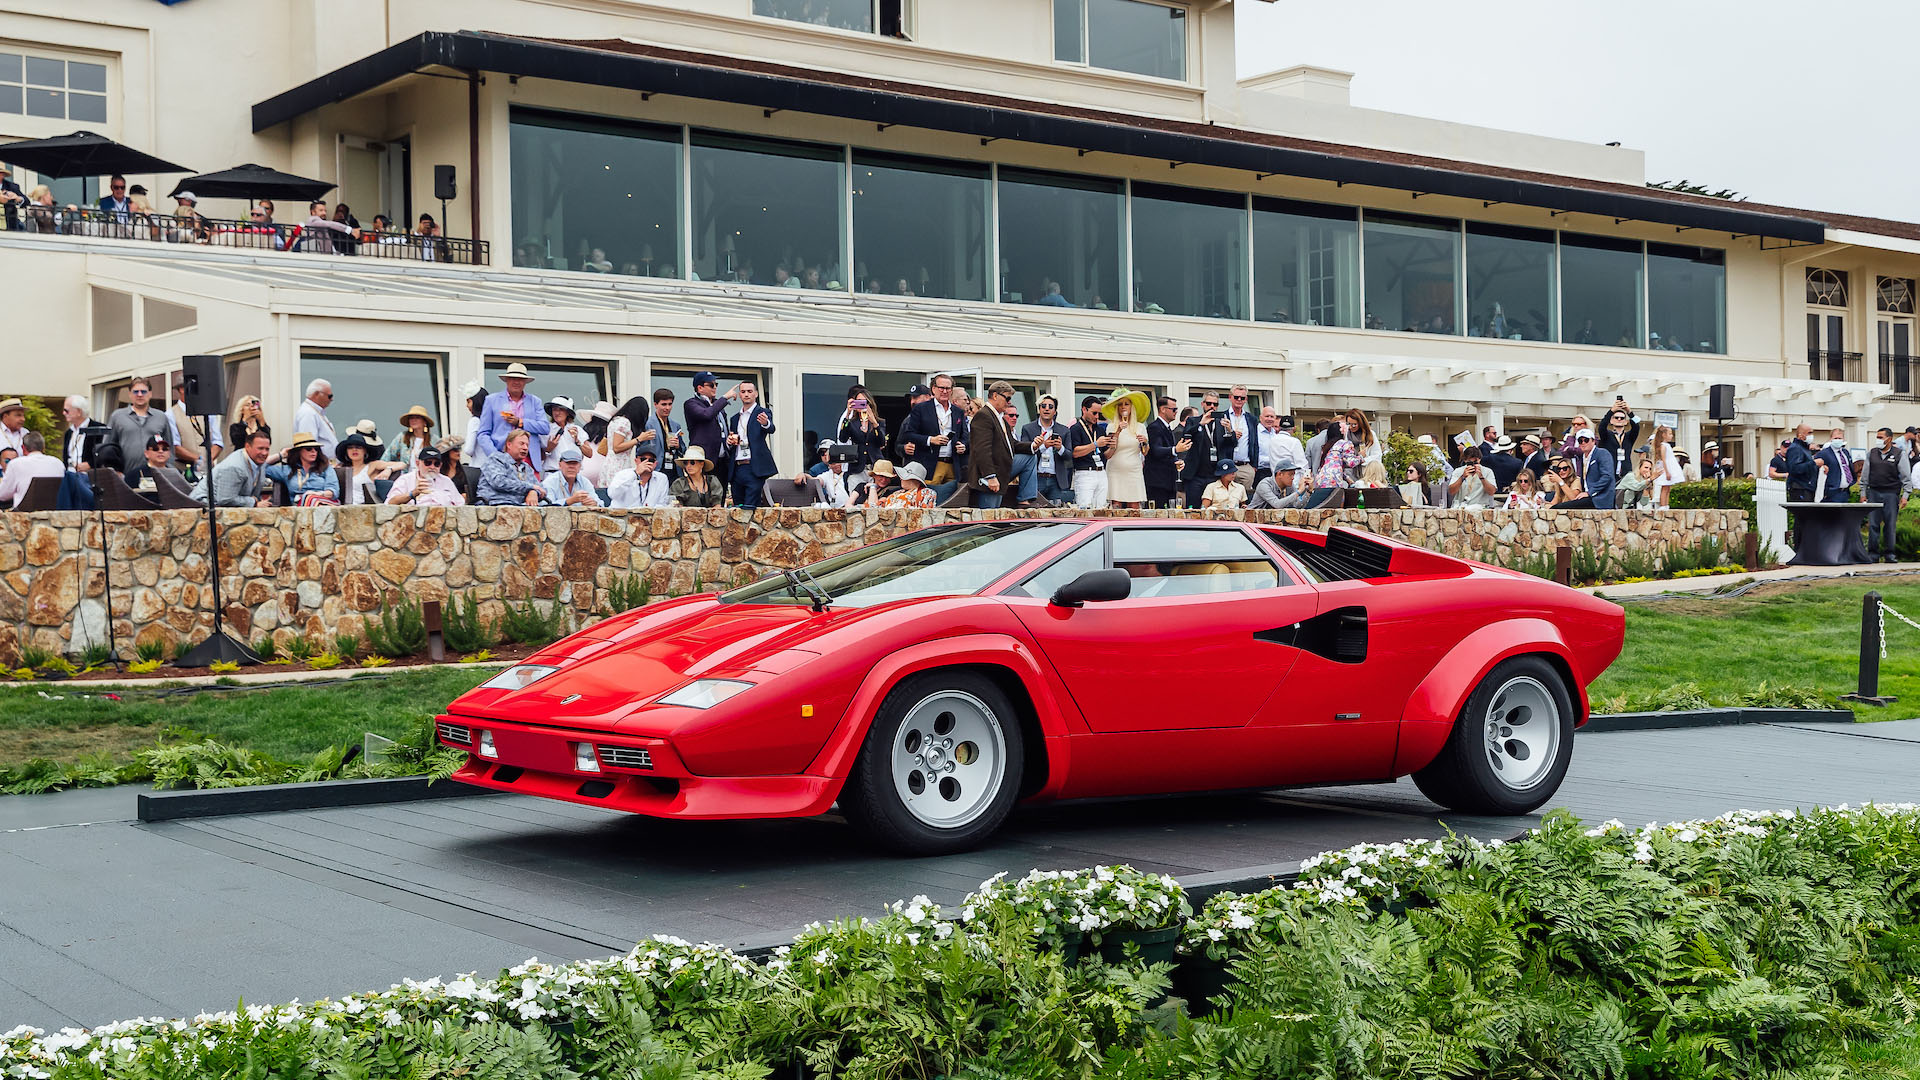 A red Countach at Pebble Beach during Monterey Car Week